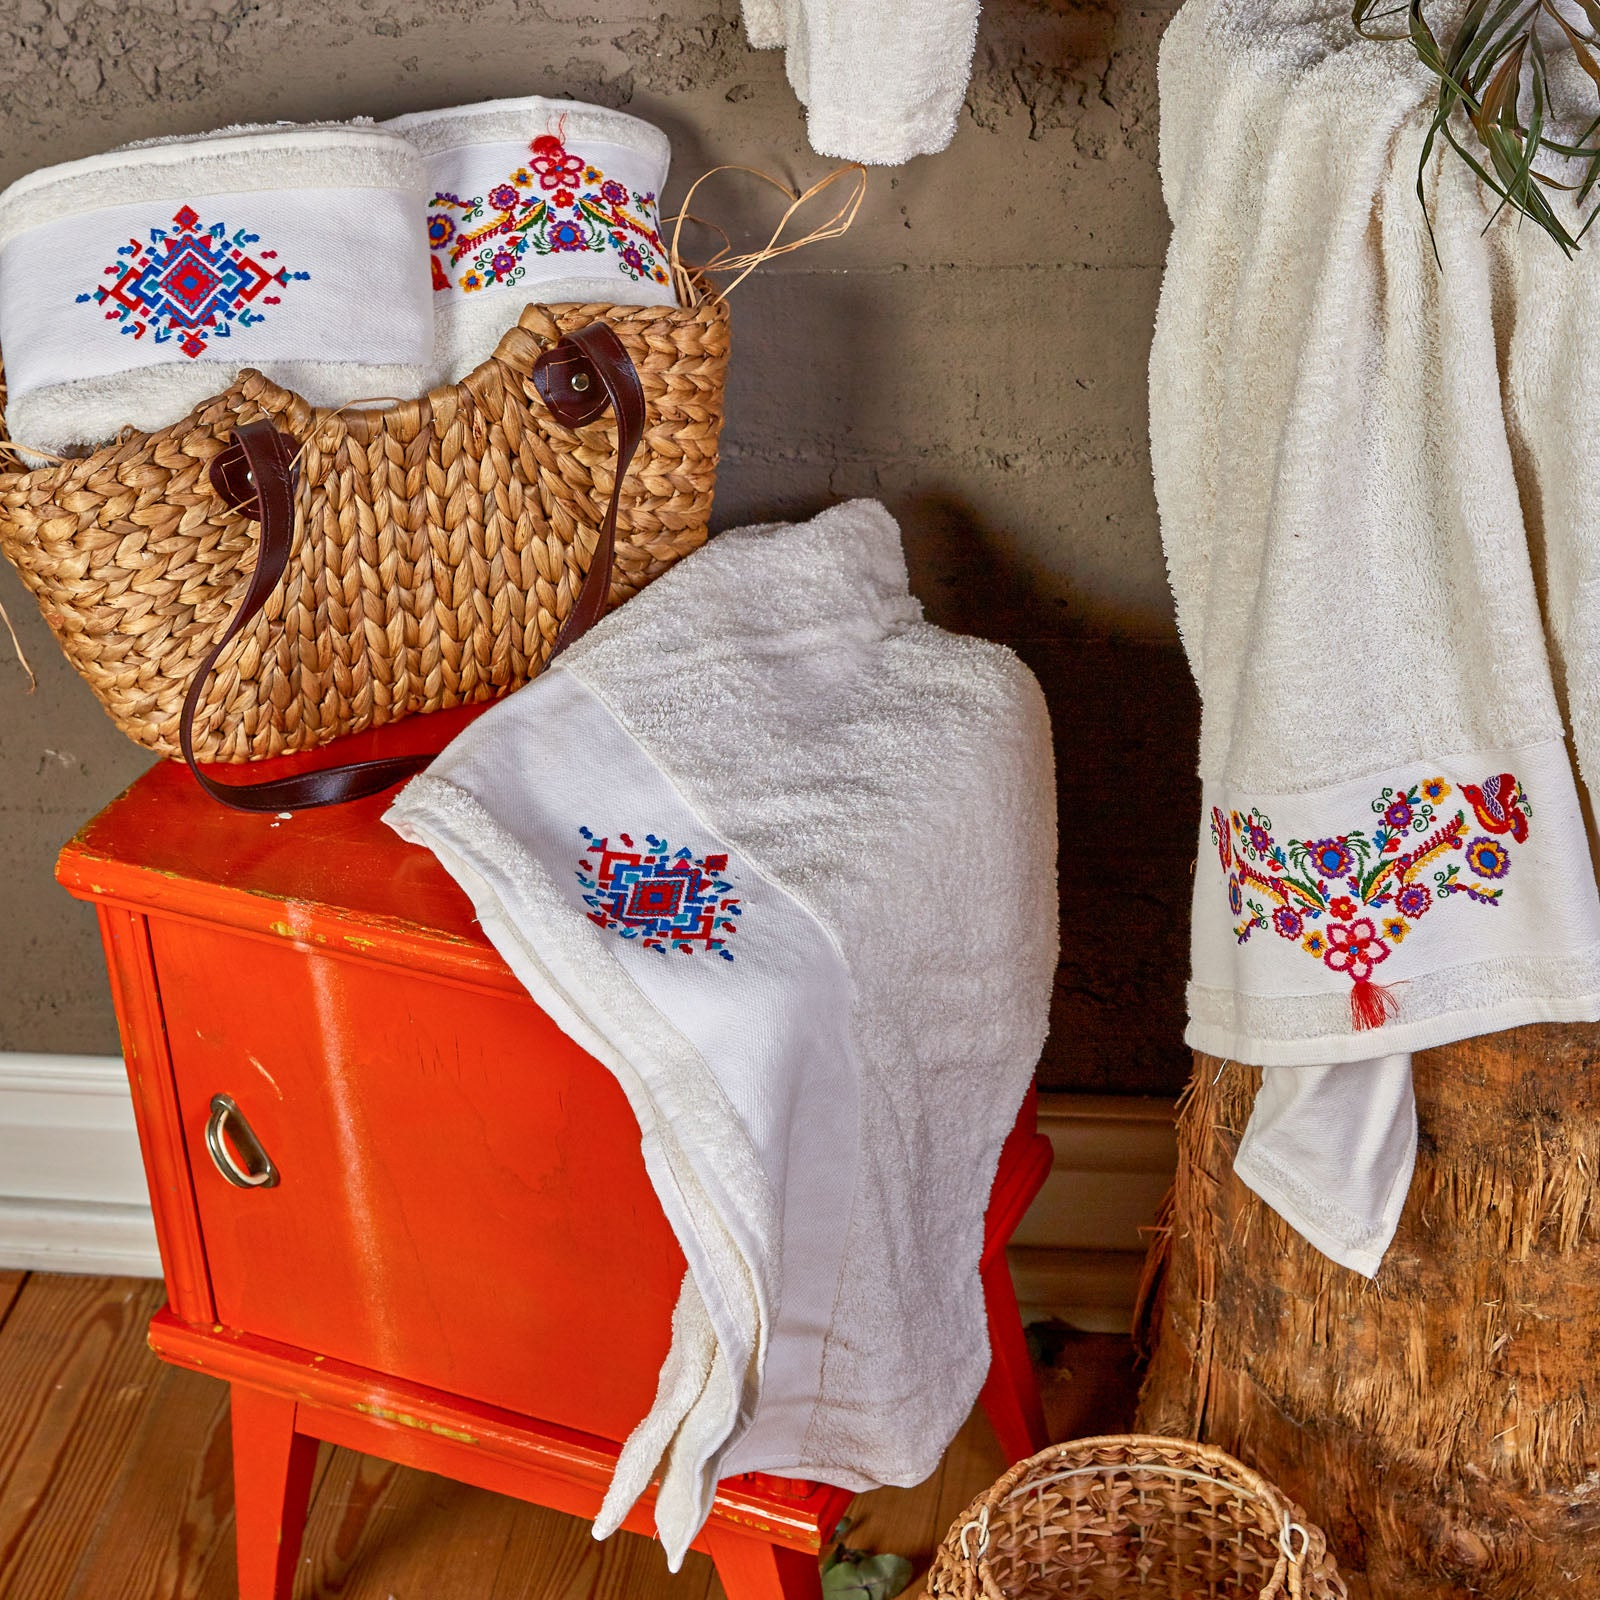 Pre-Order 50 days delivery Chipas Offwhite Embroidered Family Bathroom Set 200.16.01.0228